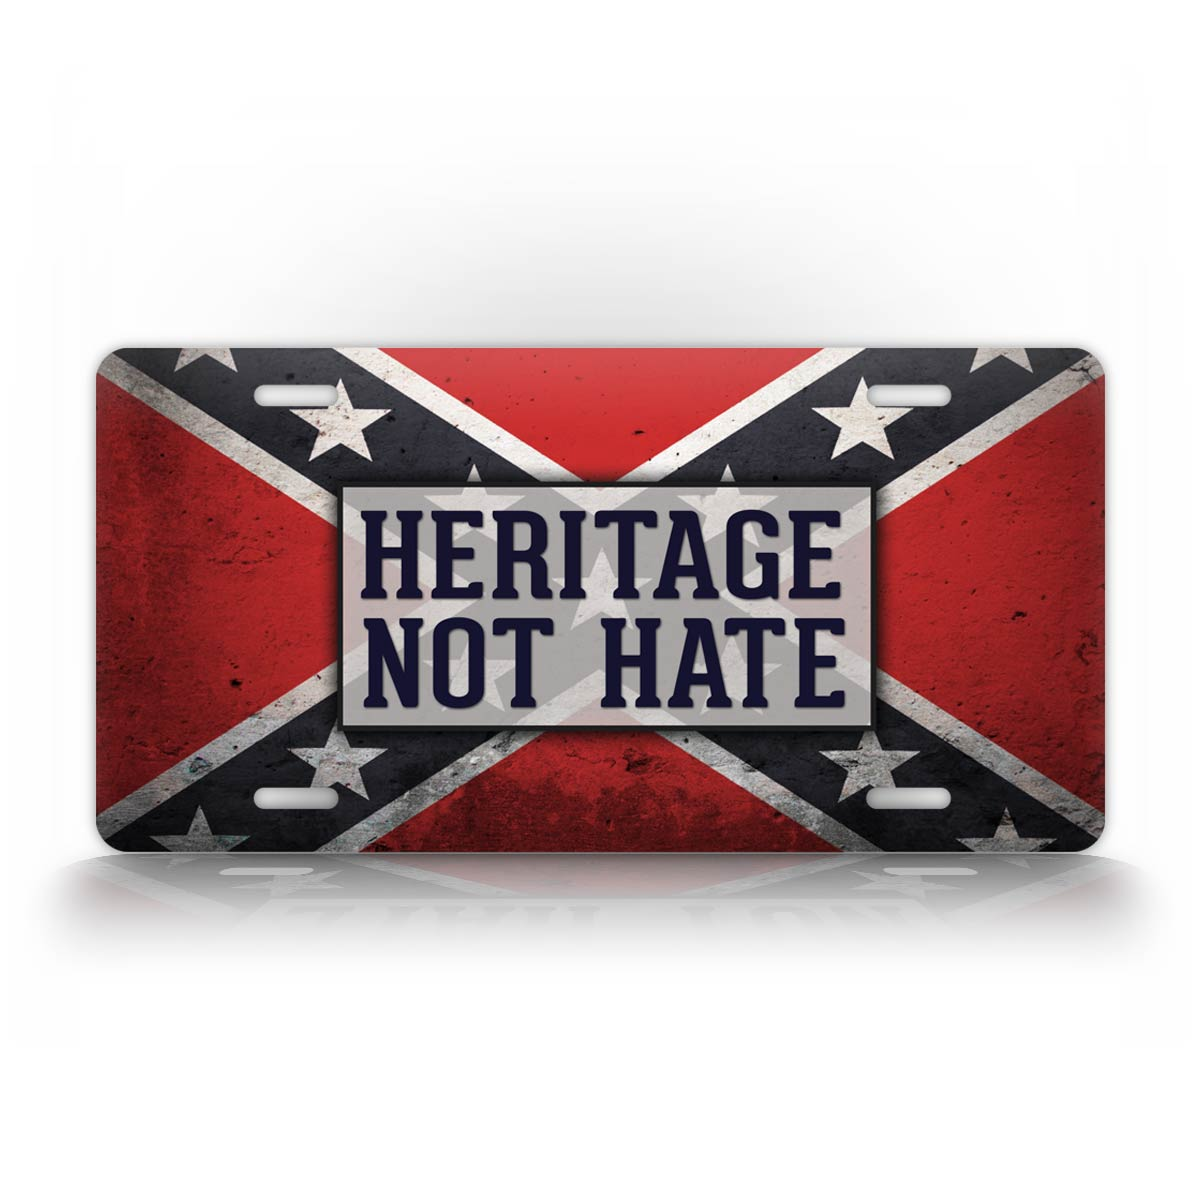 Heritage Not Hate Confederate Flag License Plate